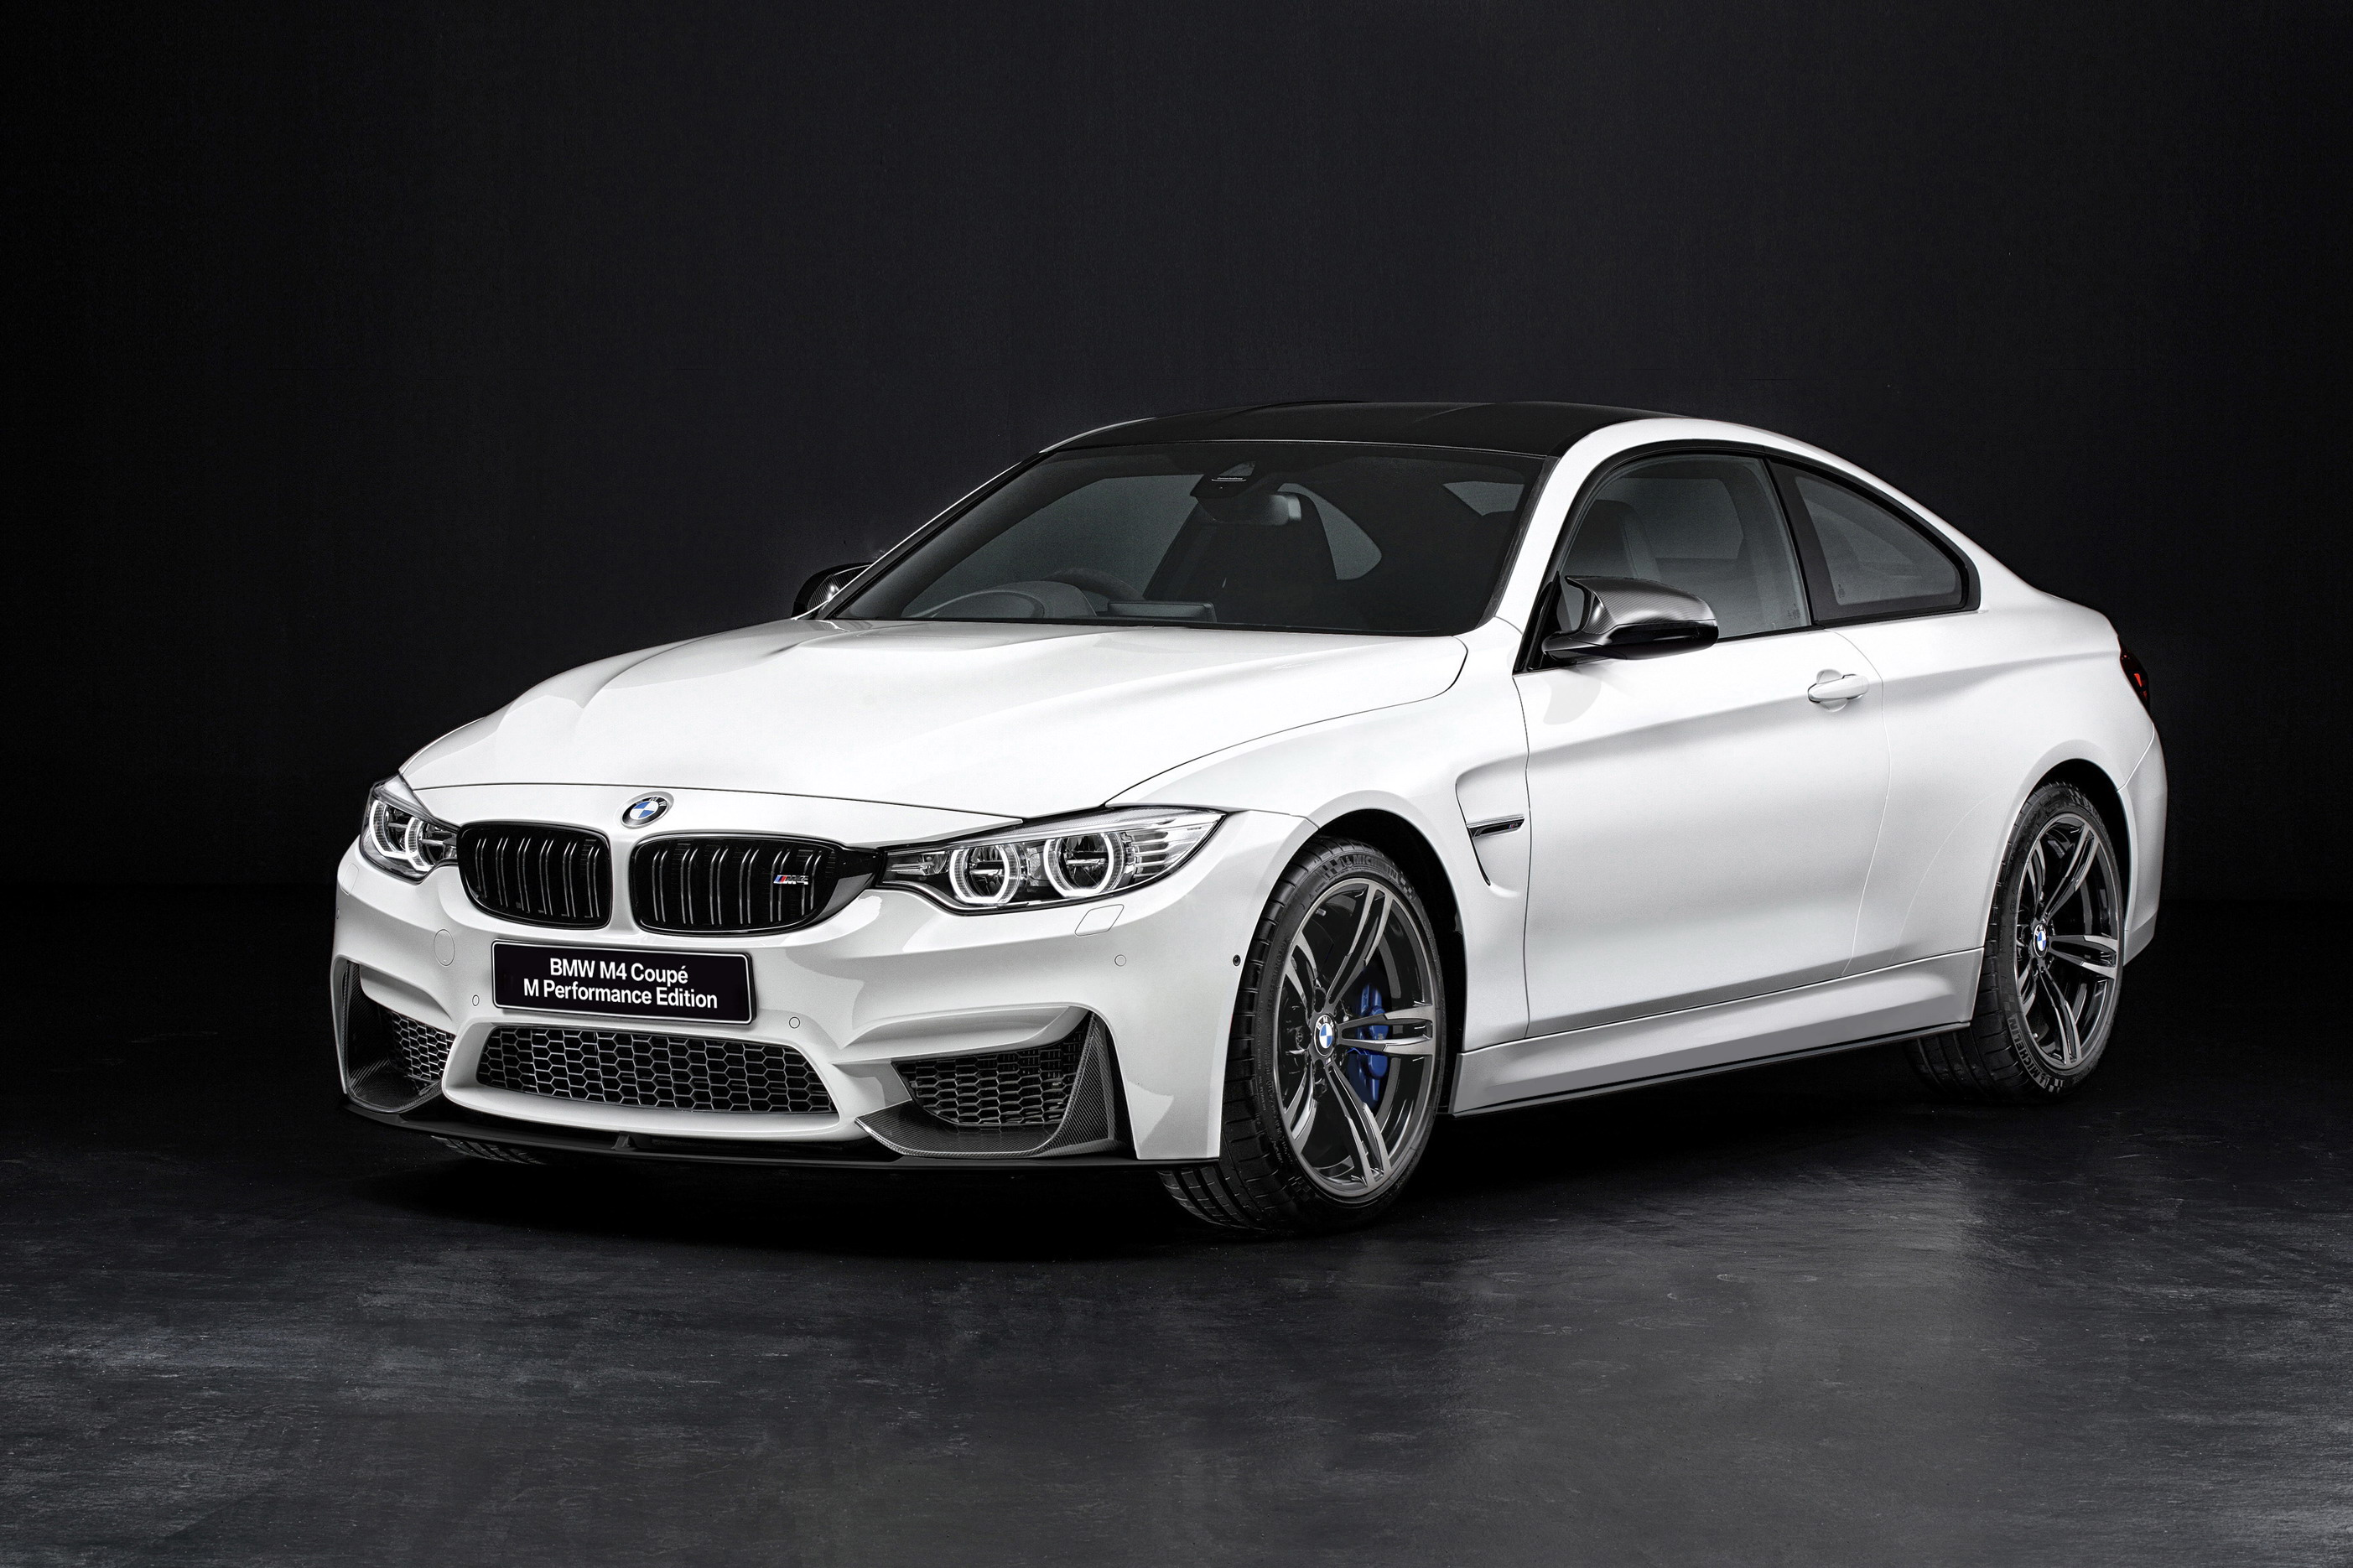 2015 Bmw M4 Coupe M Performance Edition Top Speed